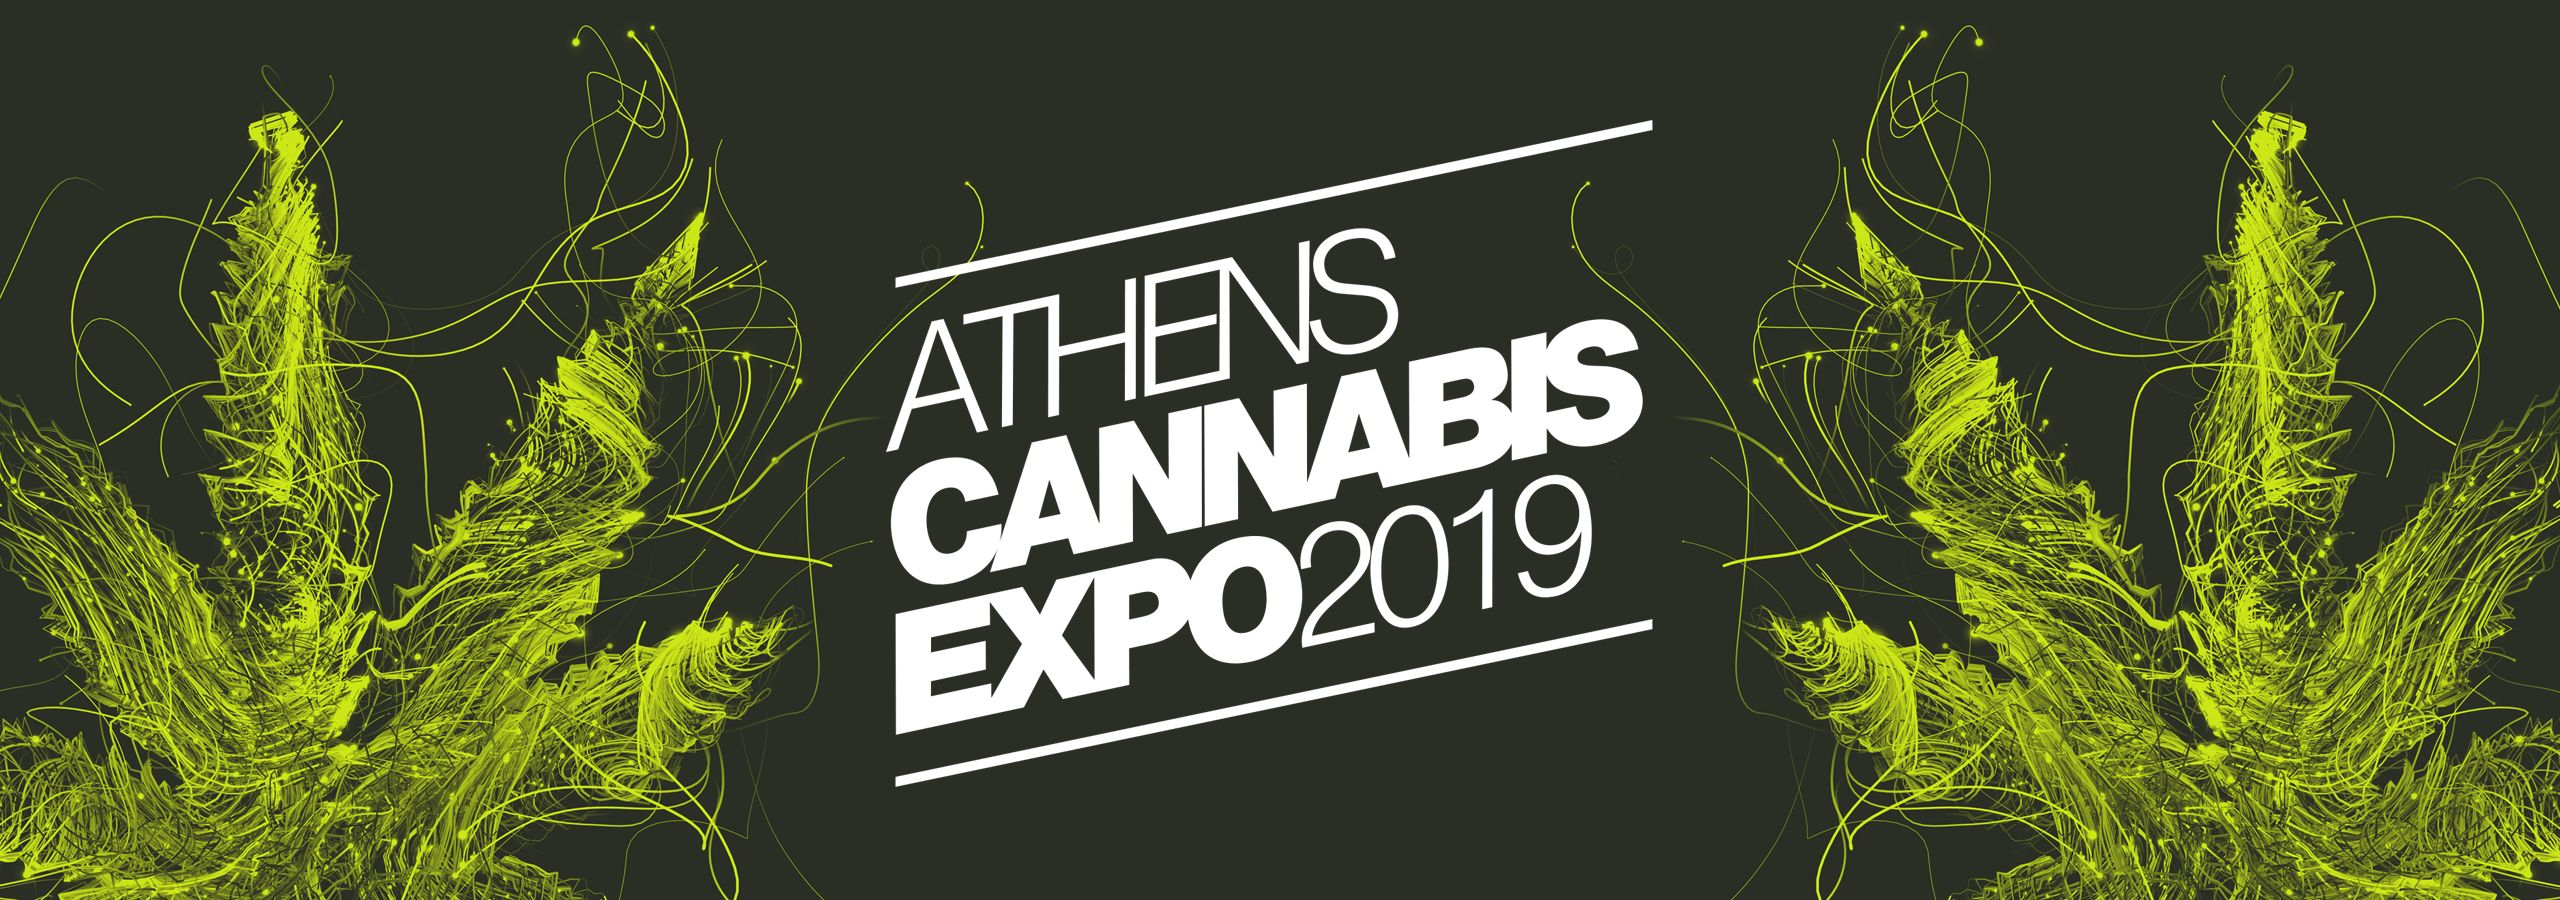 Athens Cannabis Expo ACE19MAIN-compressor